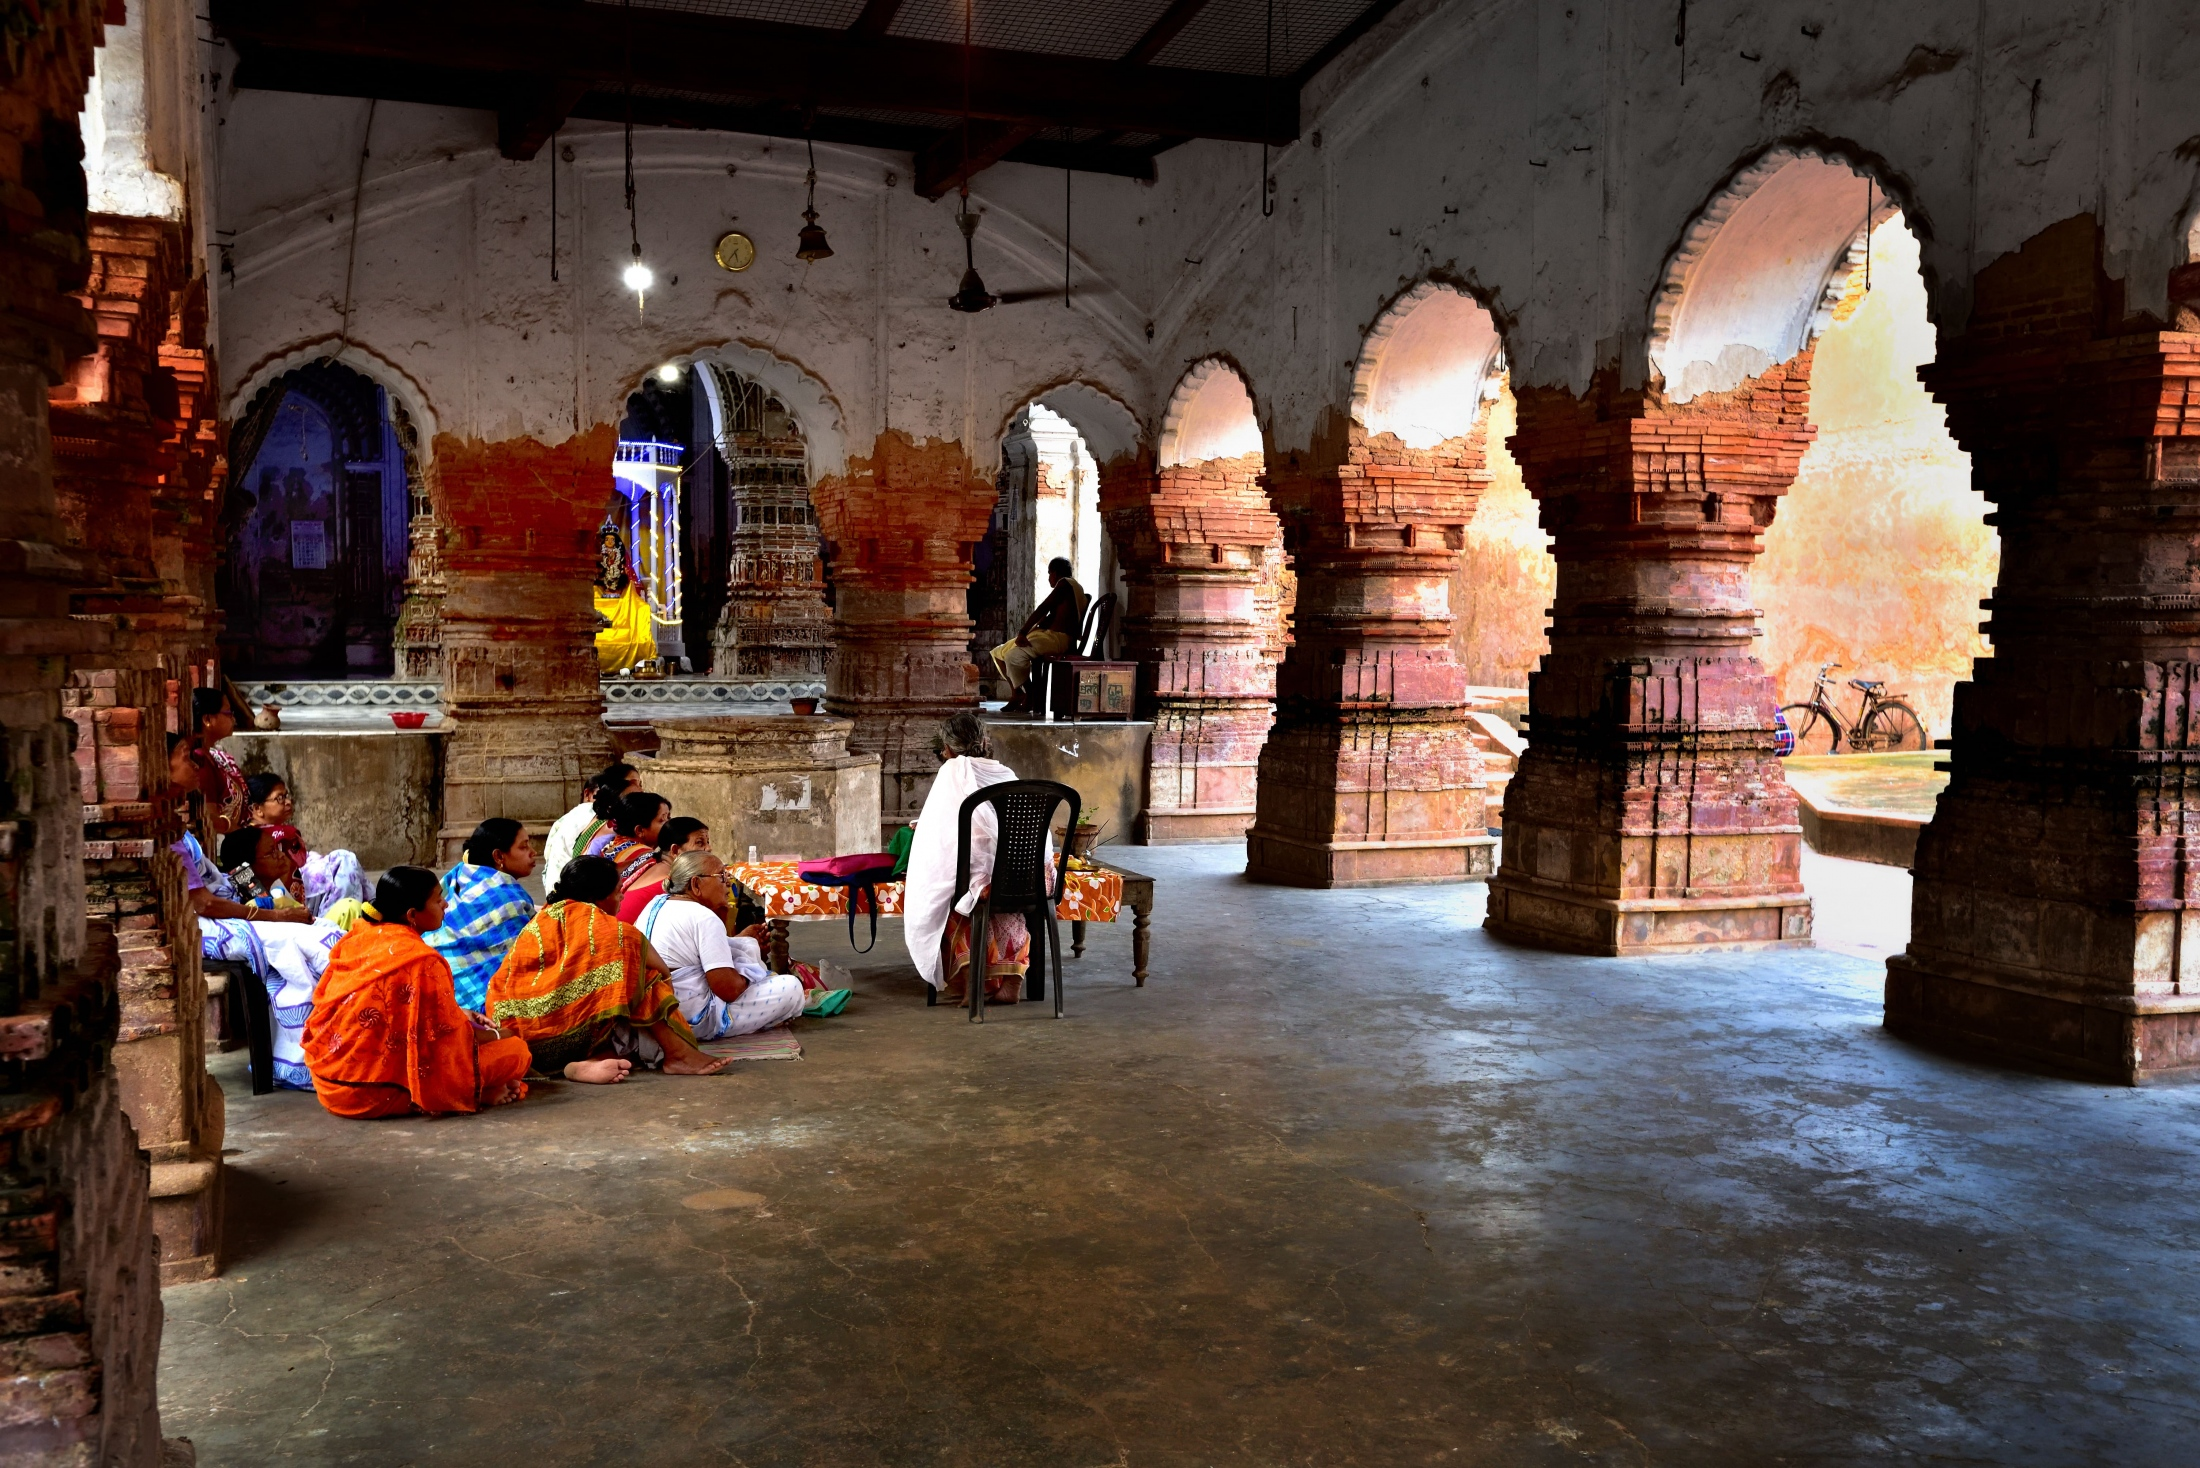 Photography image - Religious discussion in Temple